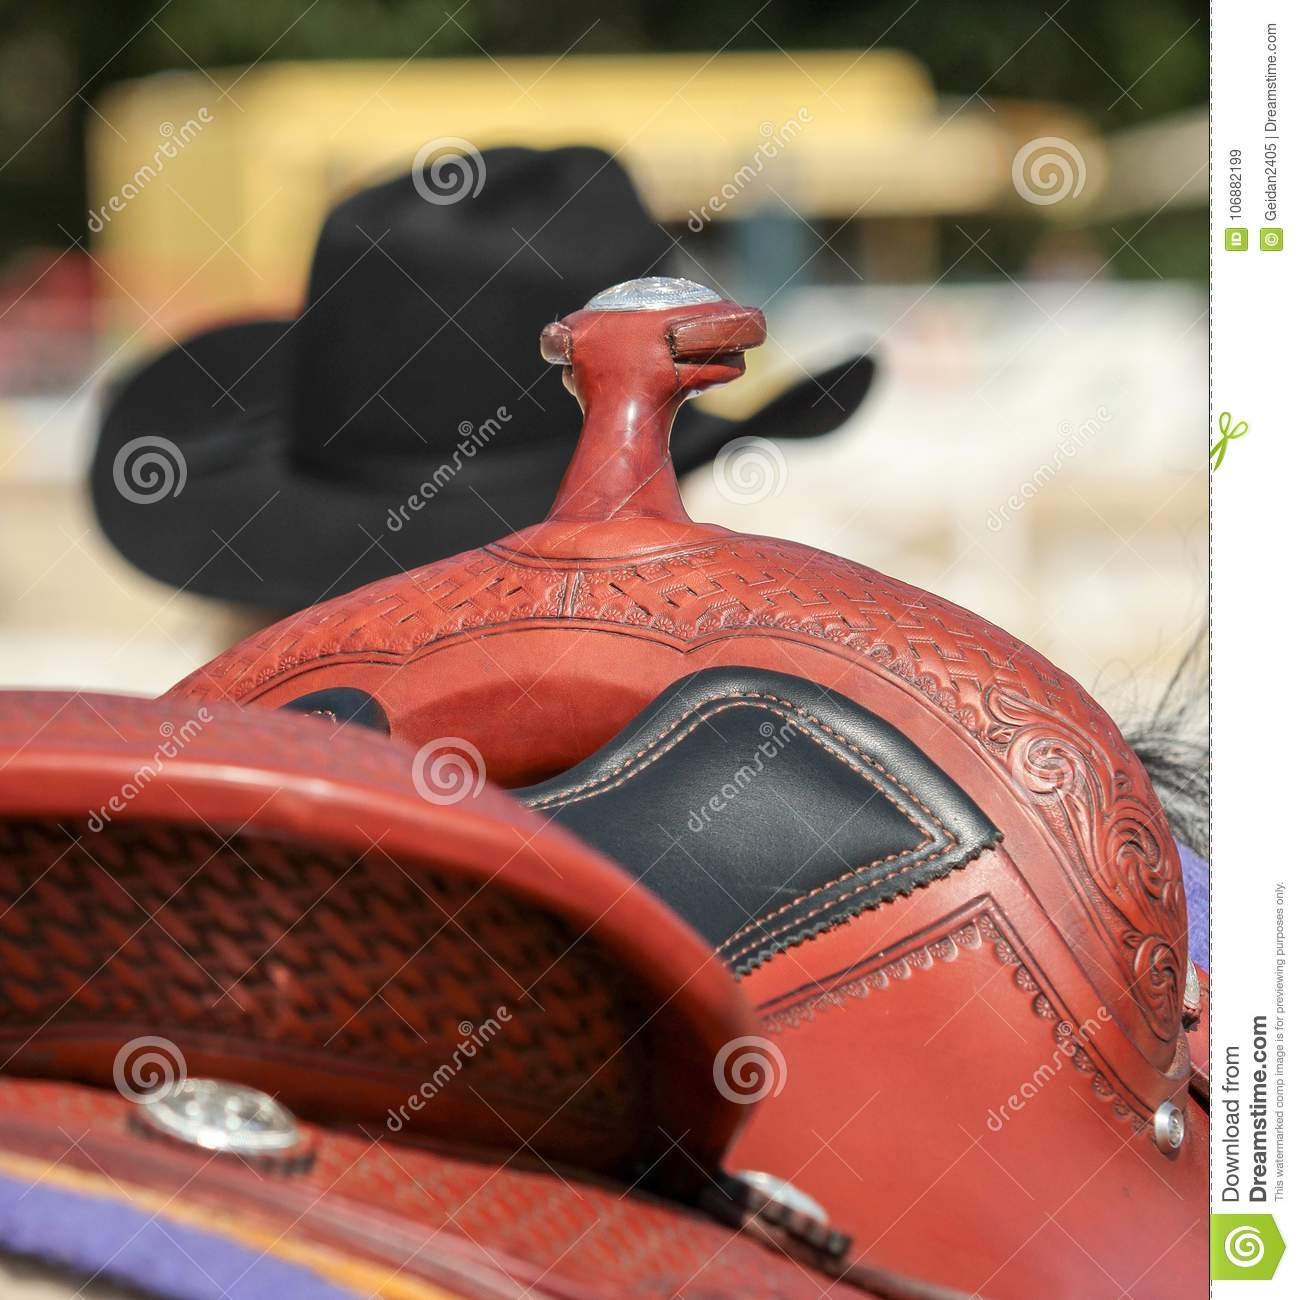 Western saddle with cowboy hat and leather harness